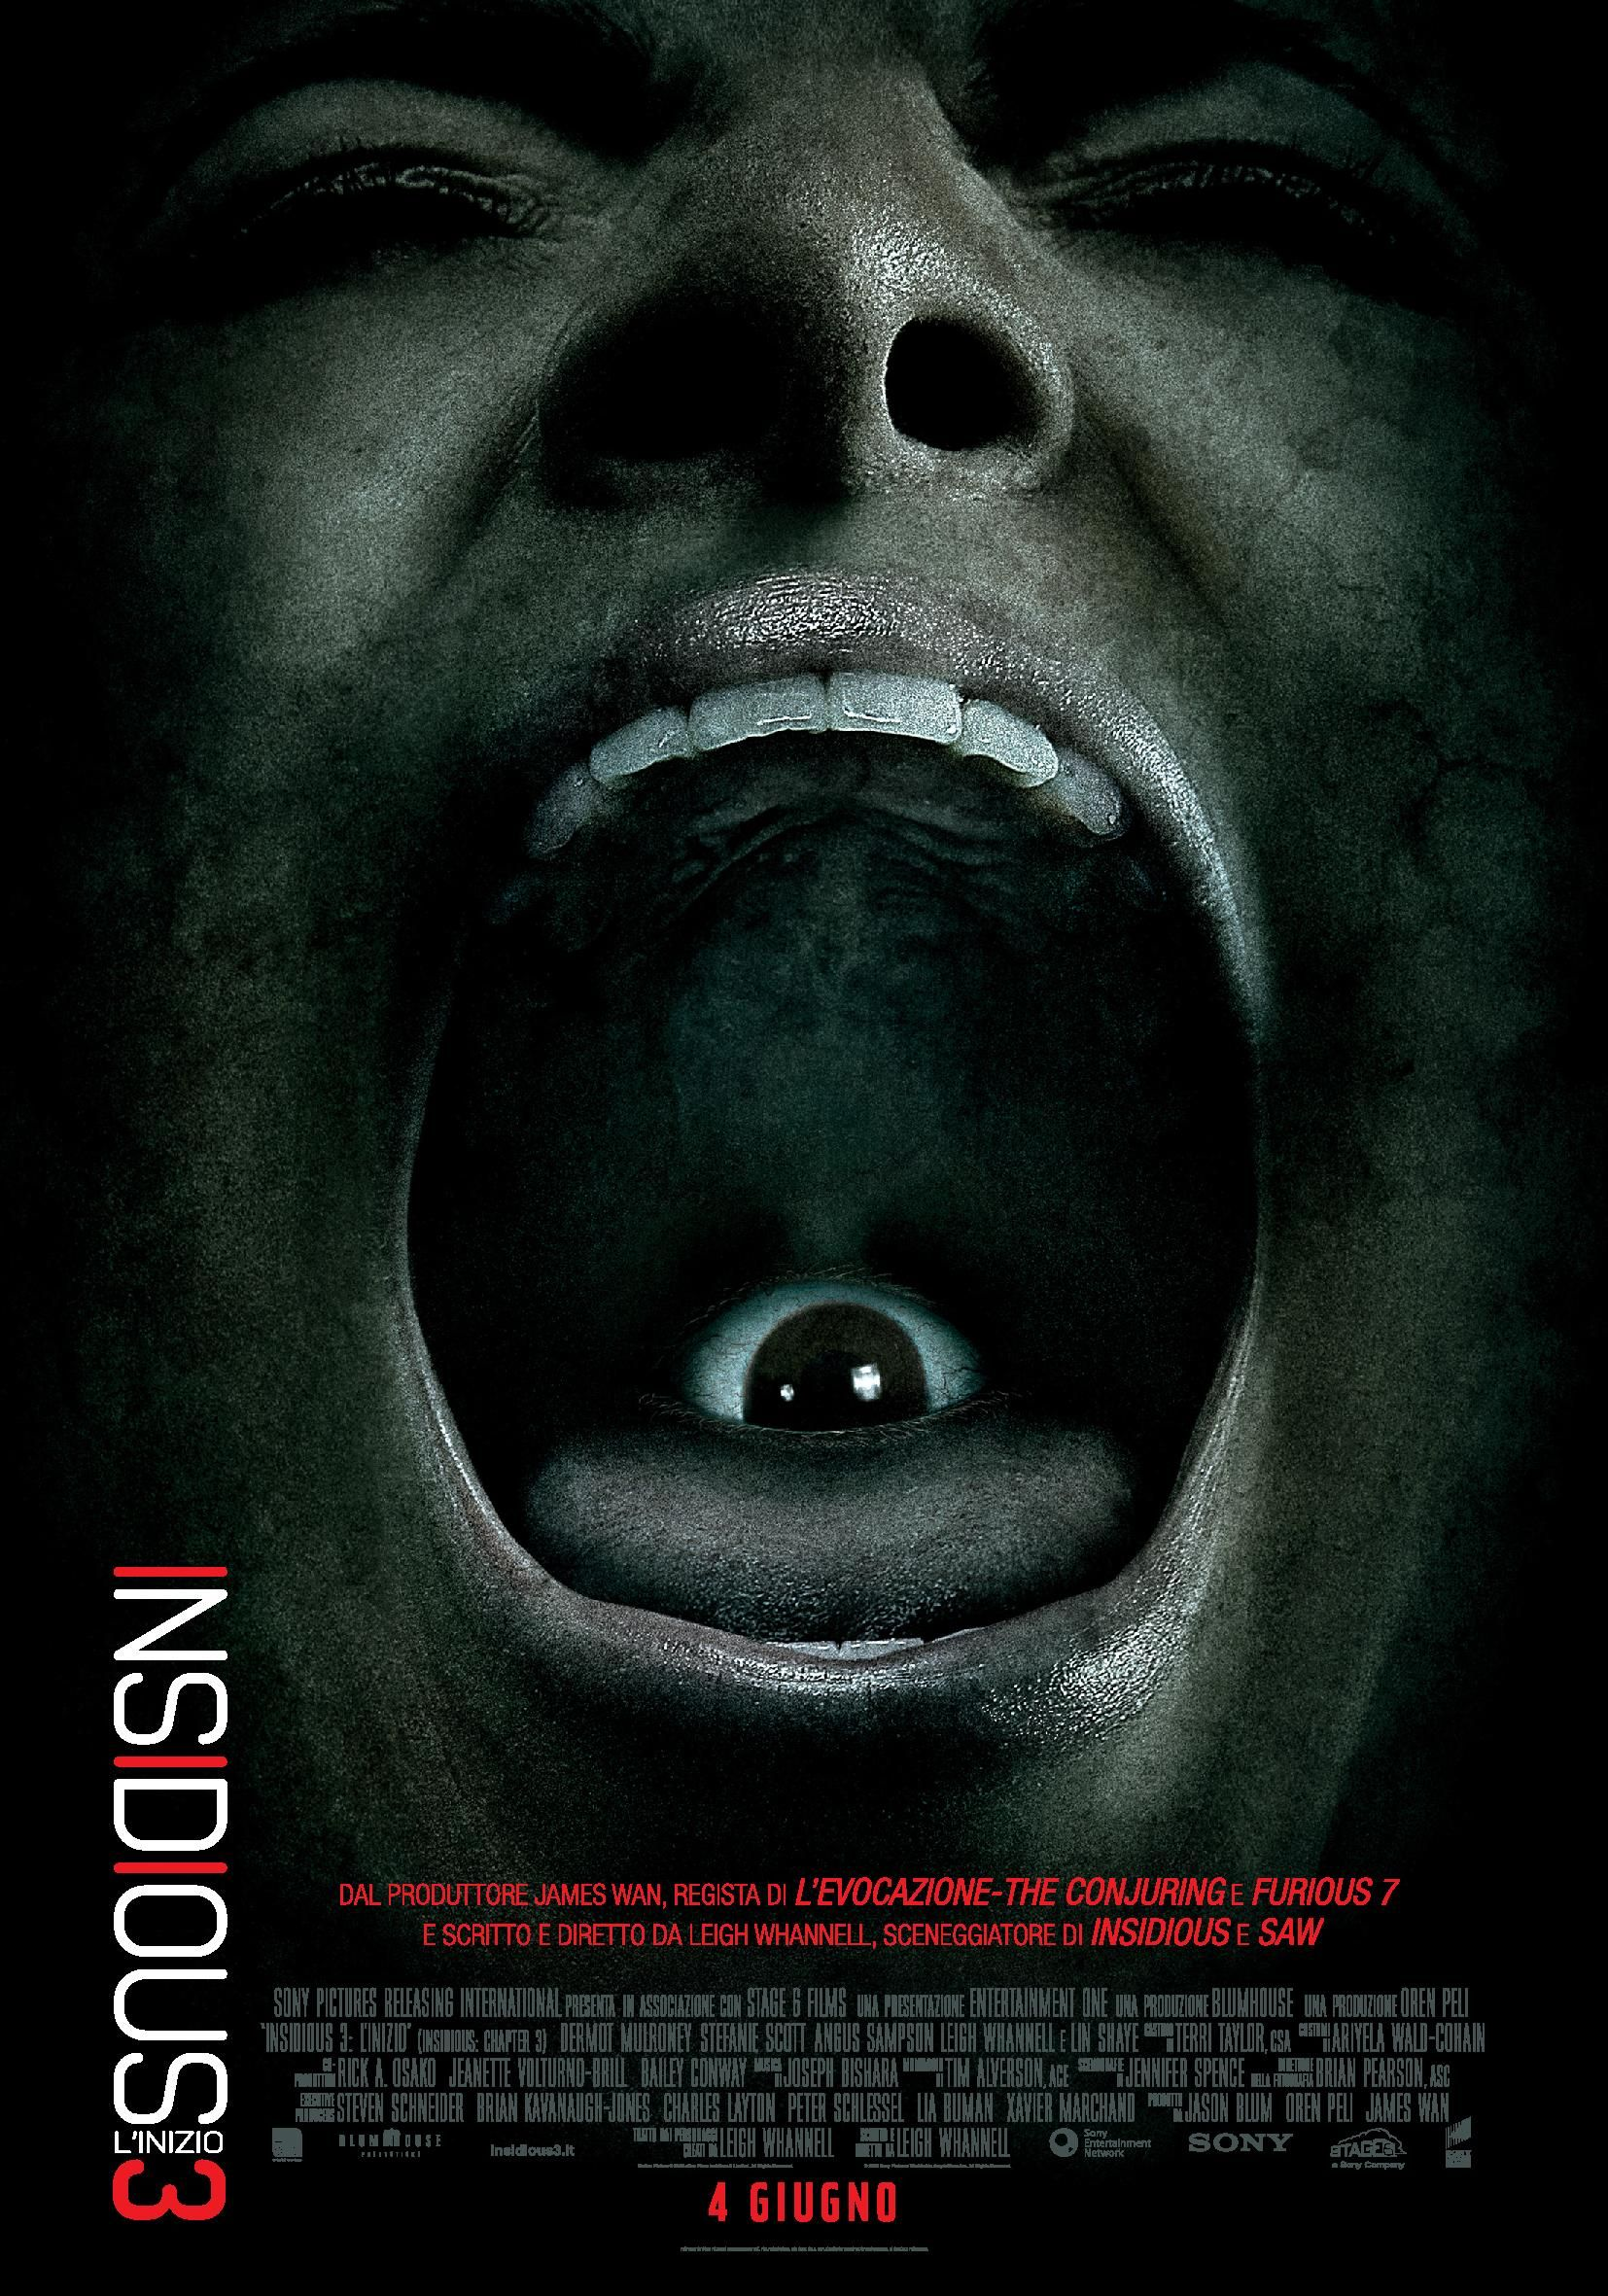 Insidious 3 Teaser Poster 1 Pictures to pin on Pinterest